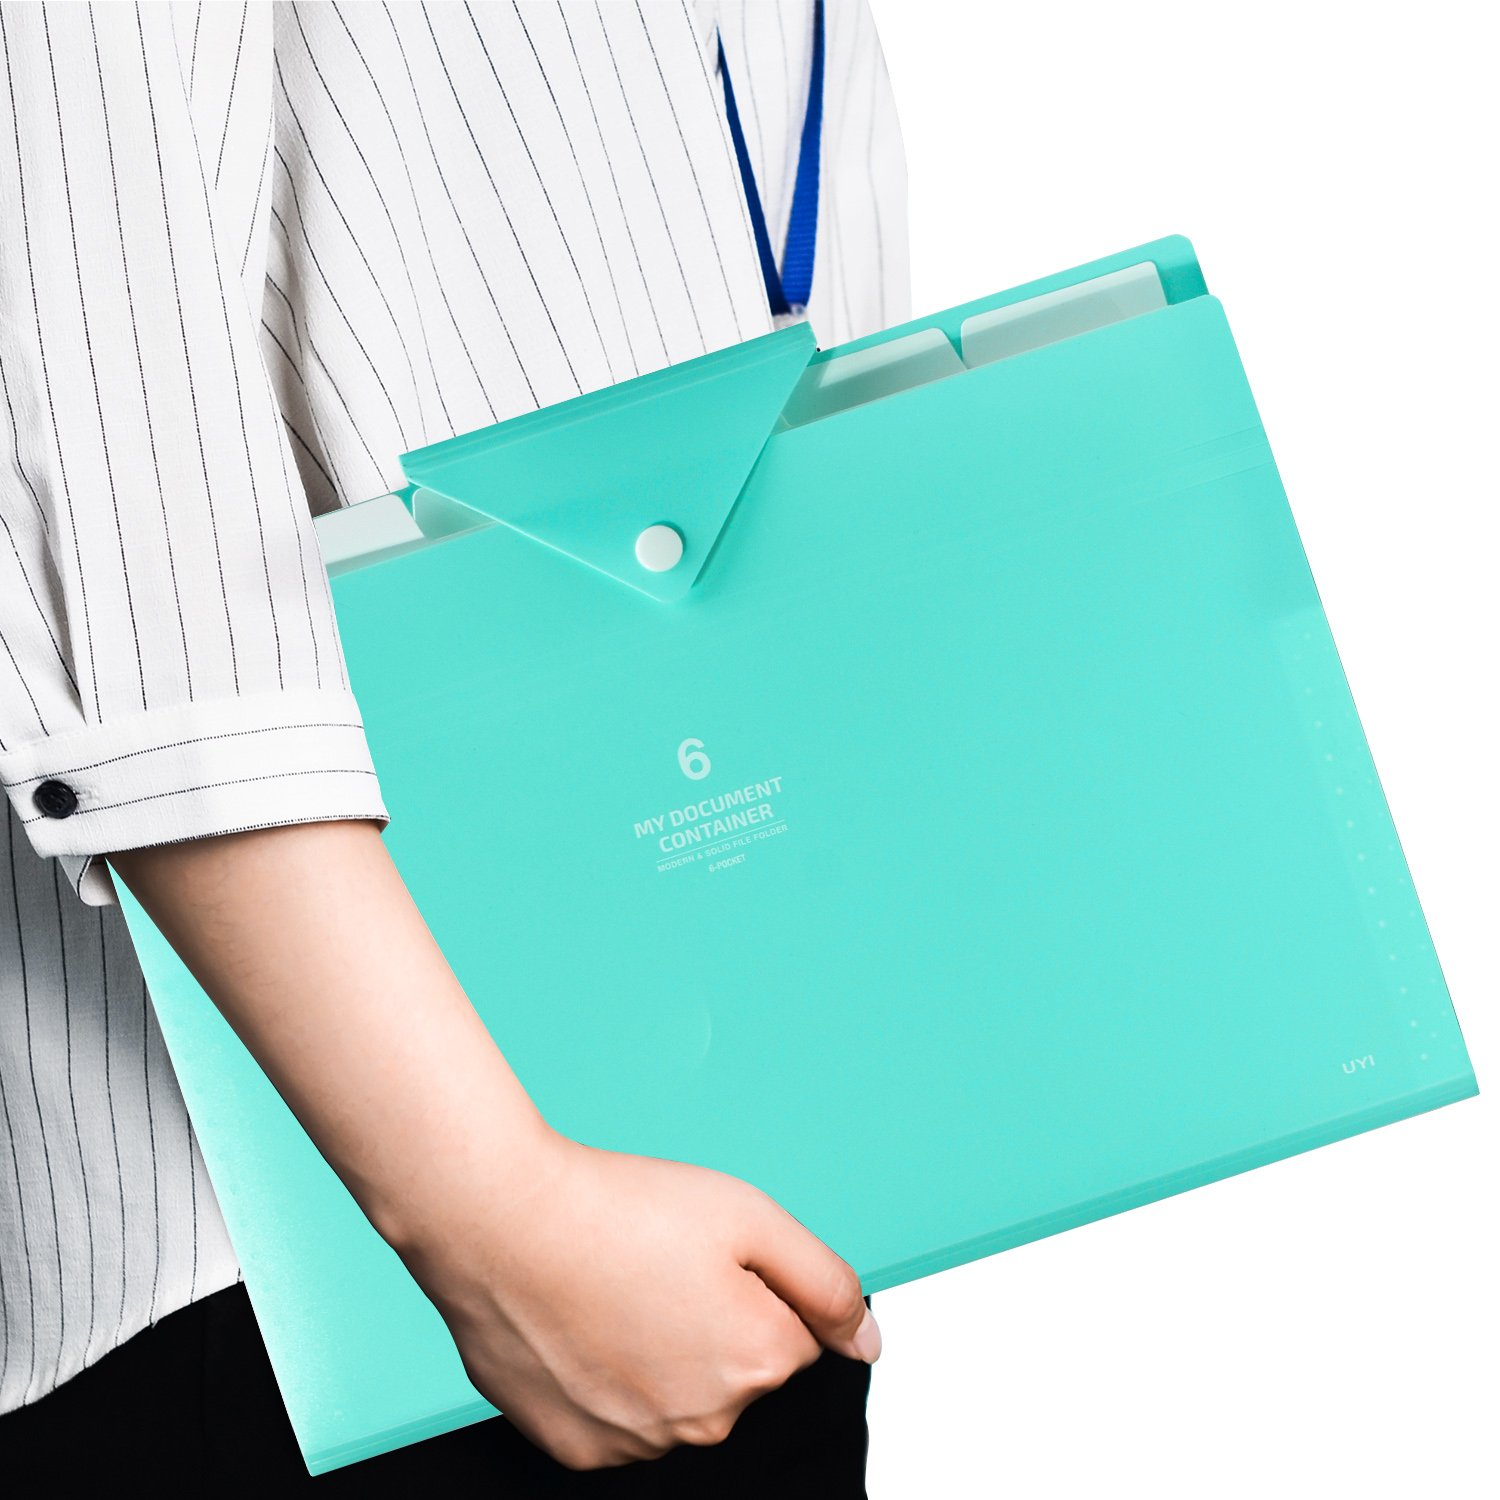 FHEAL File Folders Plastic 6 Pockets File A4 Letter Size Expanding File Folder with Snap Button Love Cute Documents Paper Organizer Accordion Folder for Student or Office Worker Macaroon Green